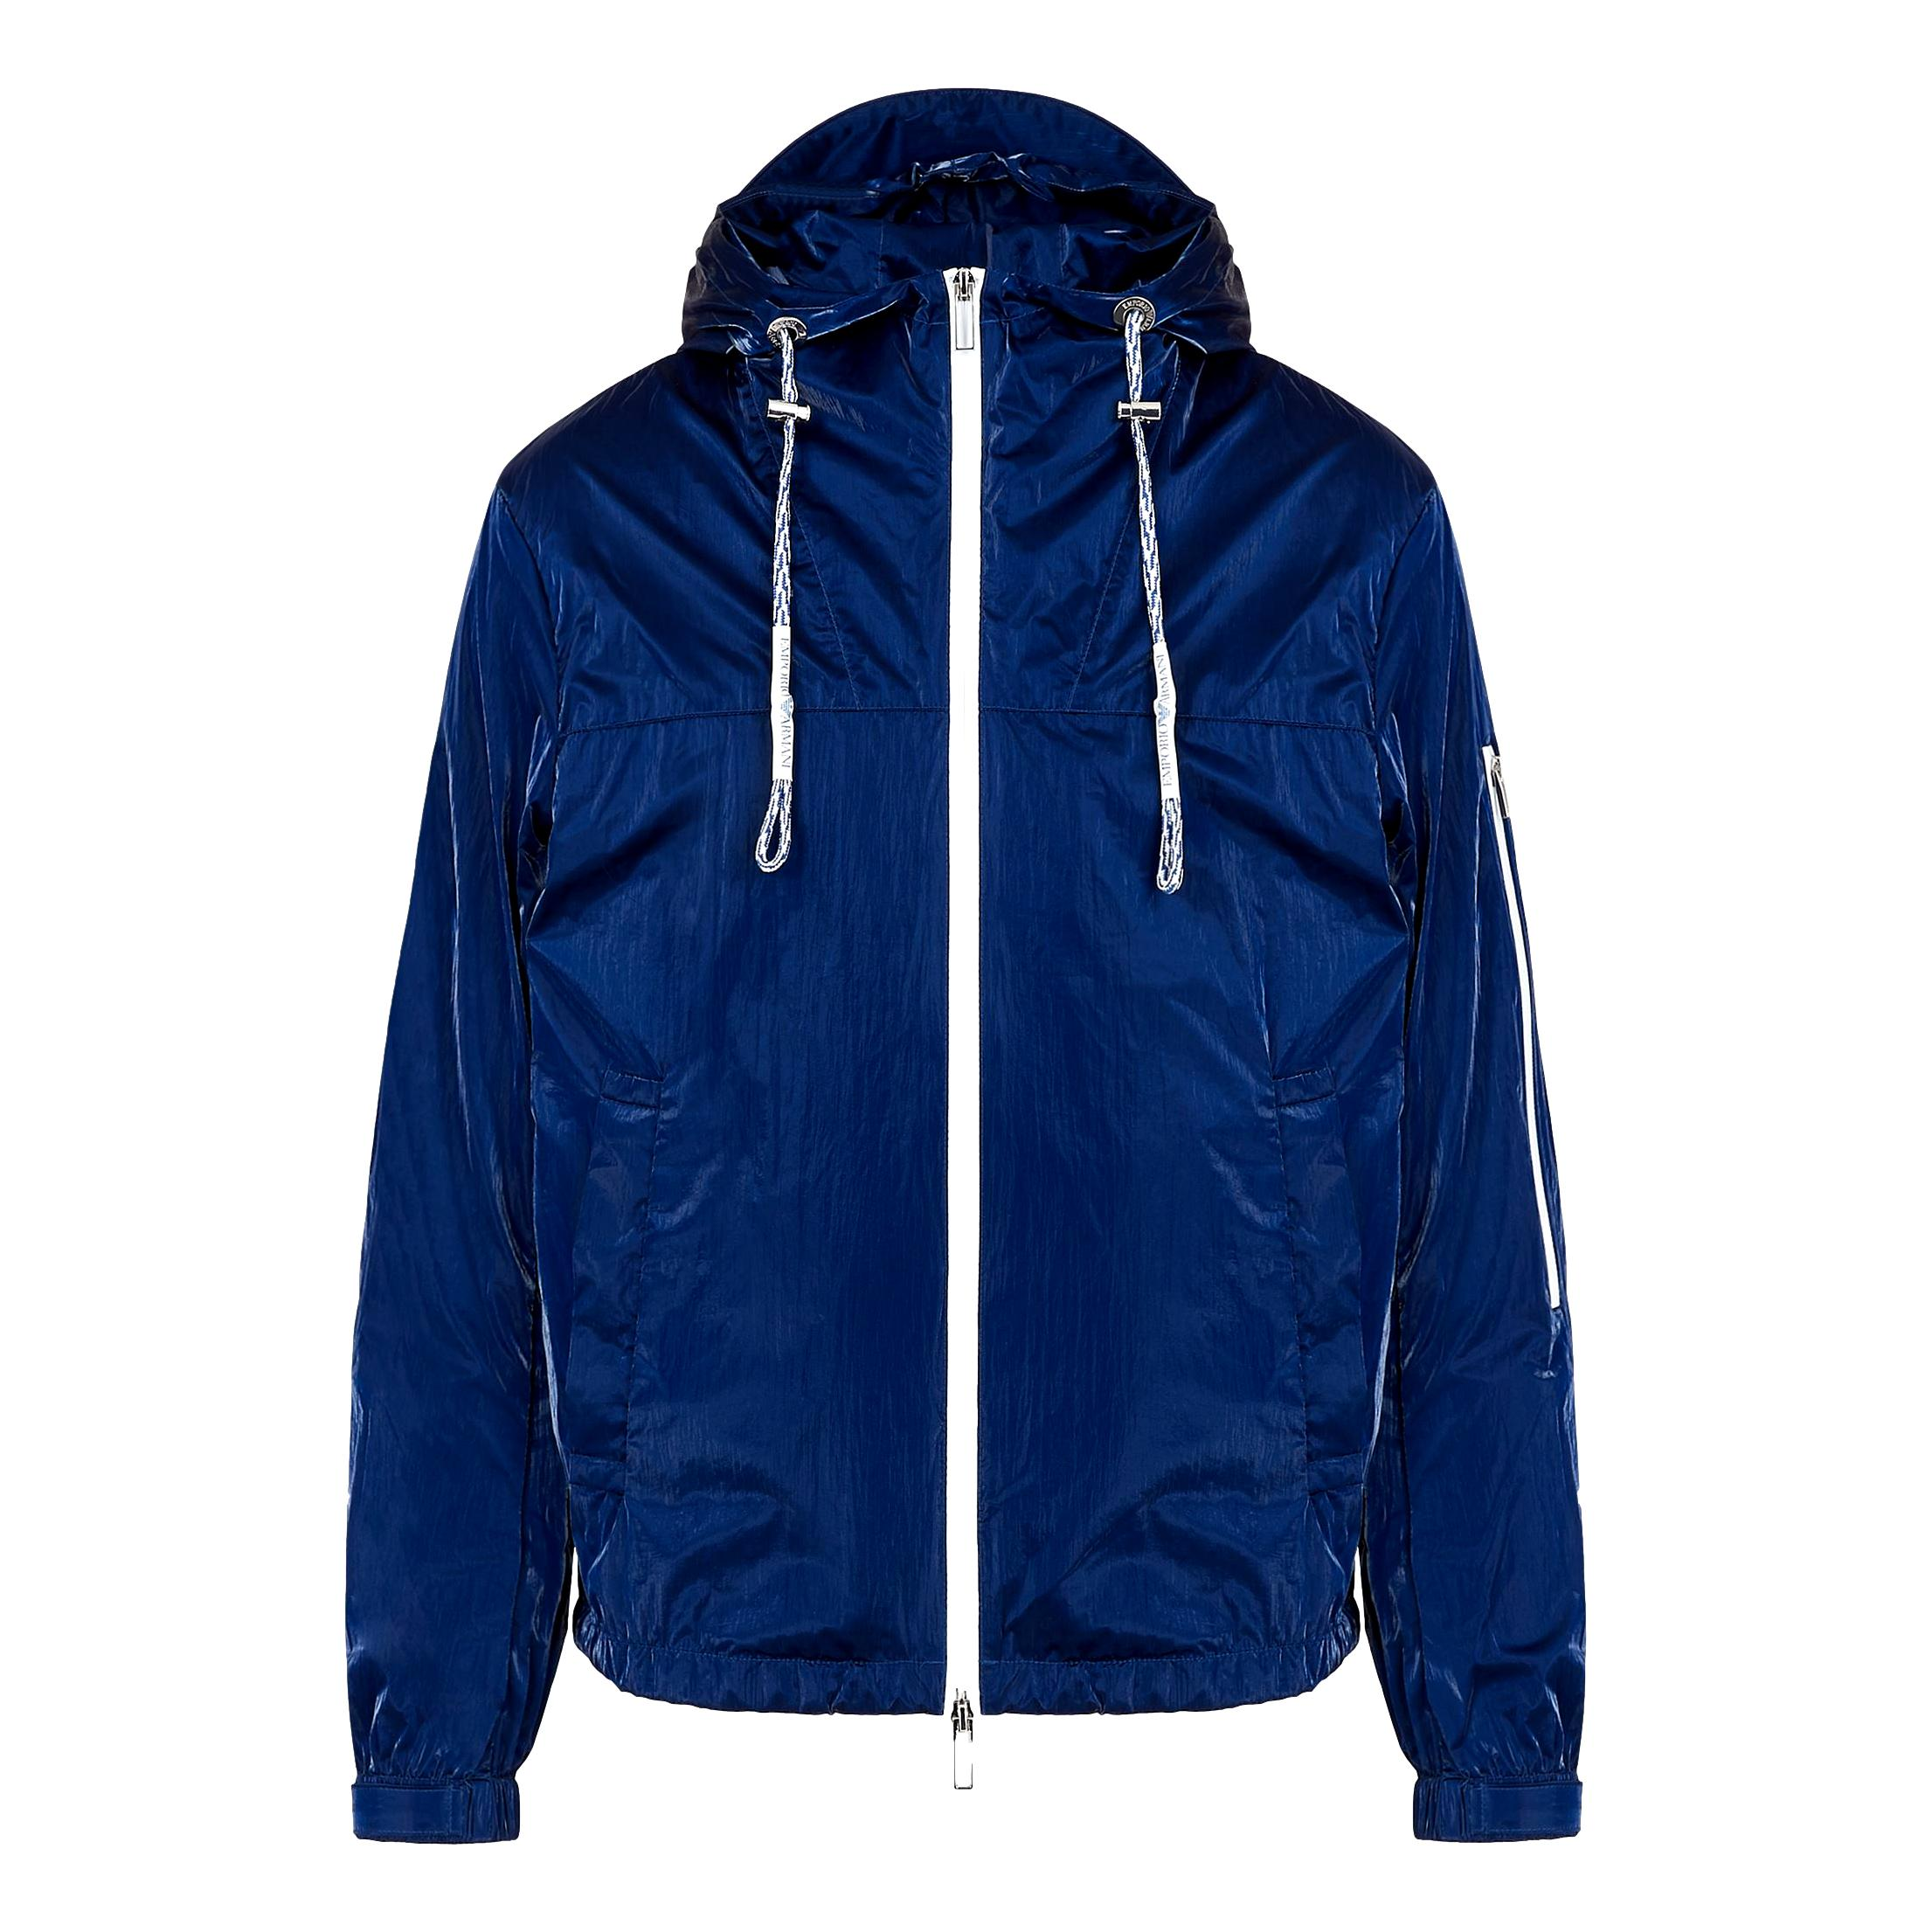 Blouson in nylon glass effect with hood and logo EMPORIO ARMANI |  | 3K1BT3 1NZUZ0921